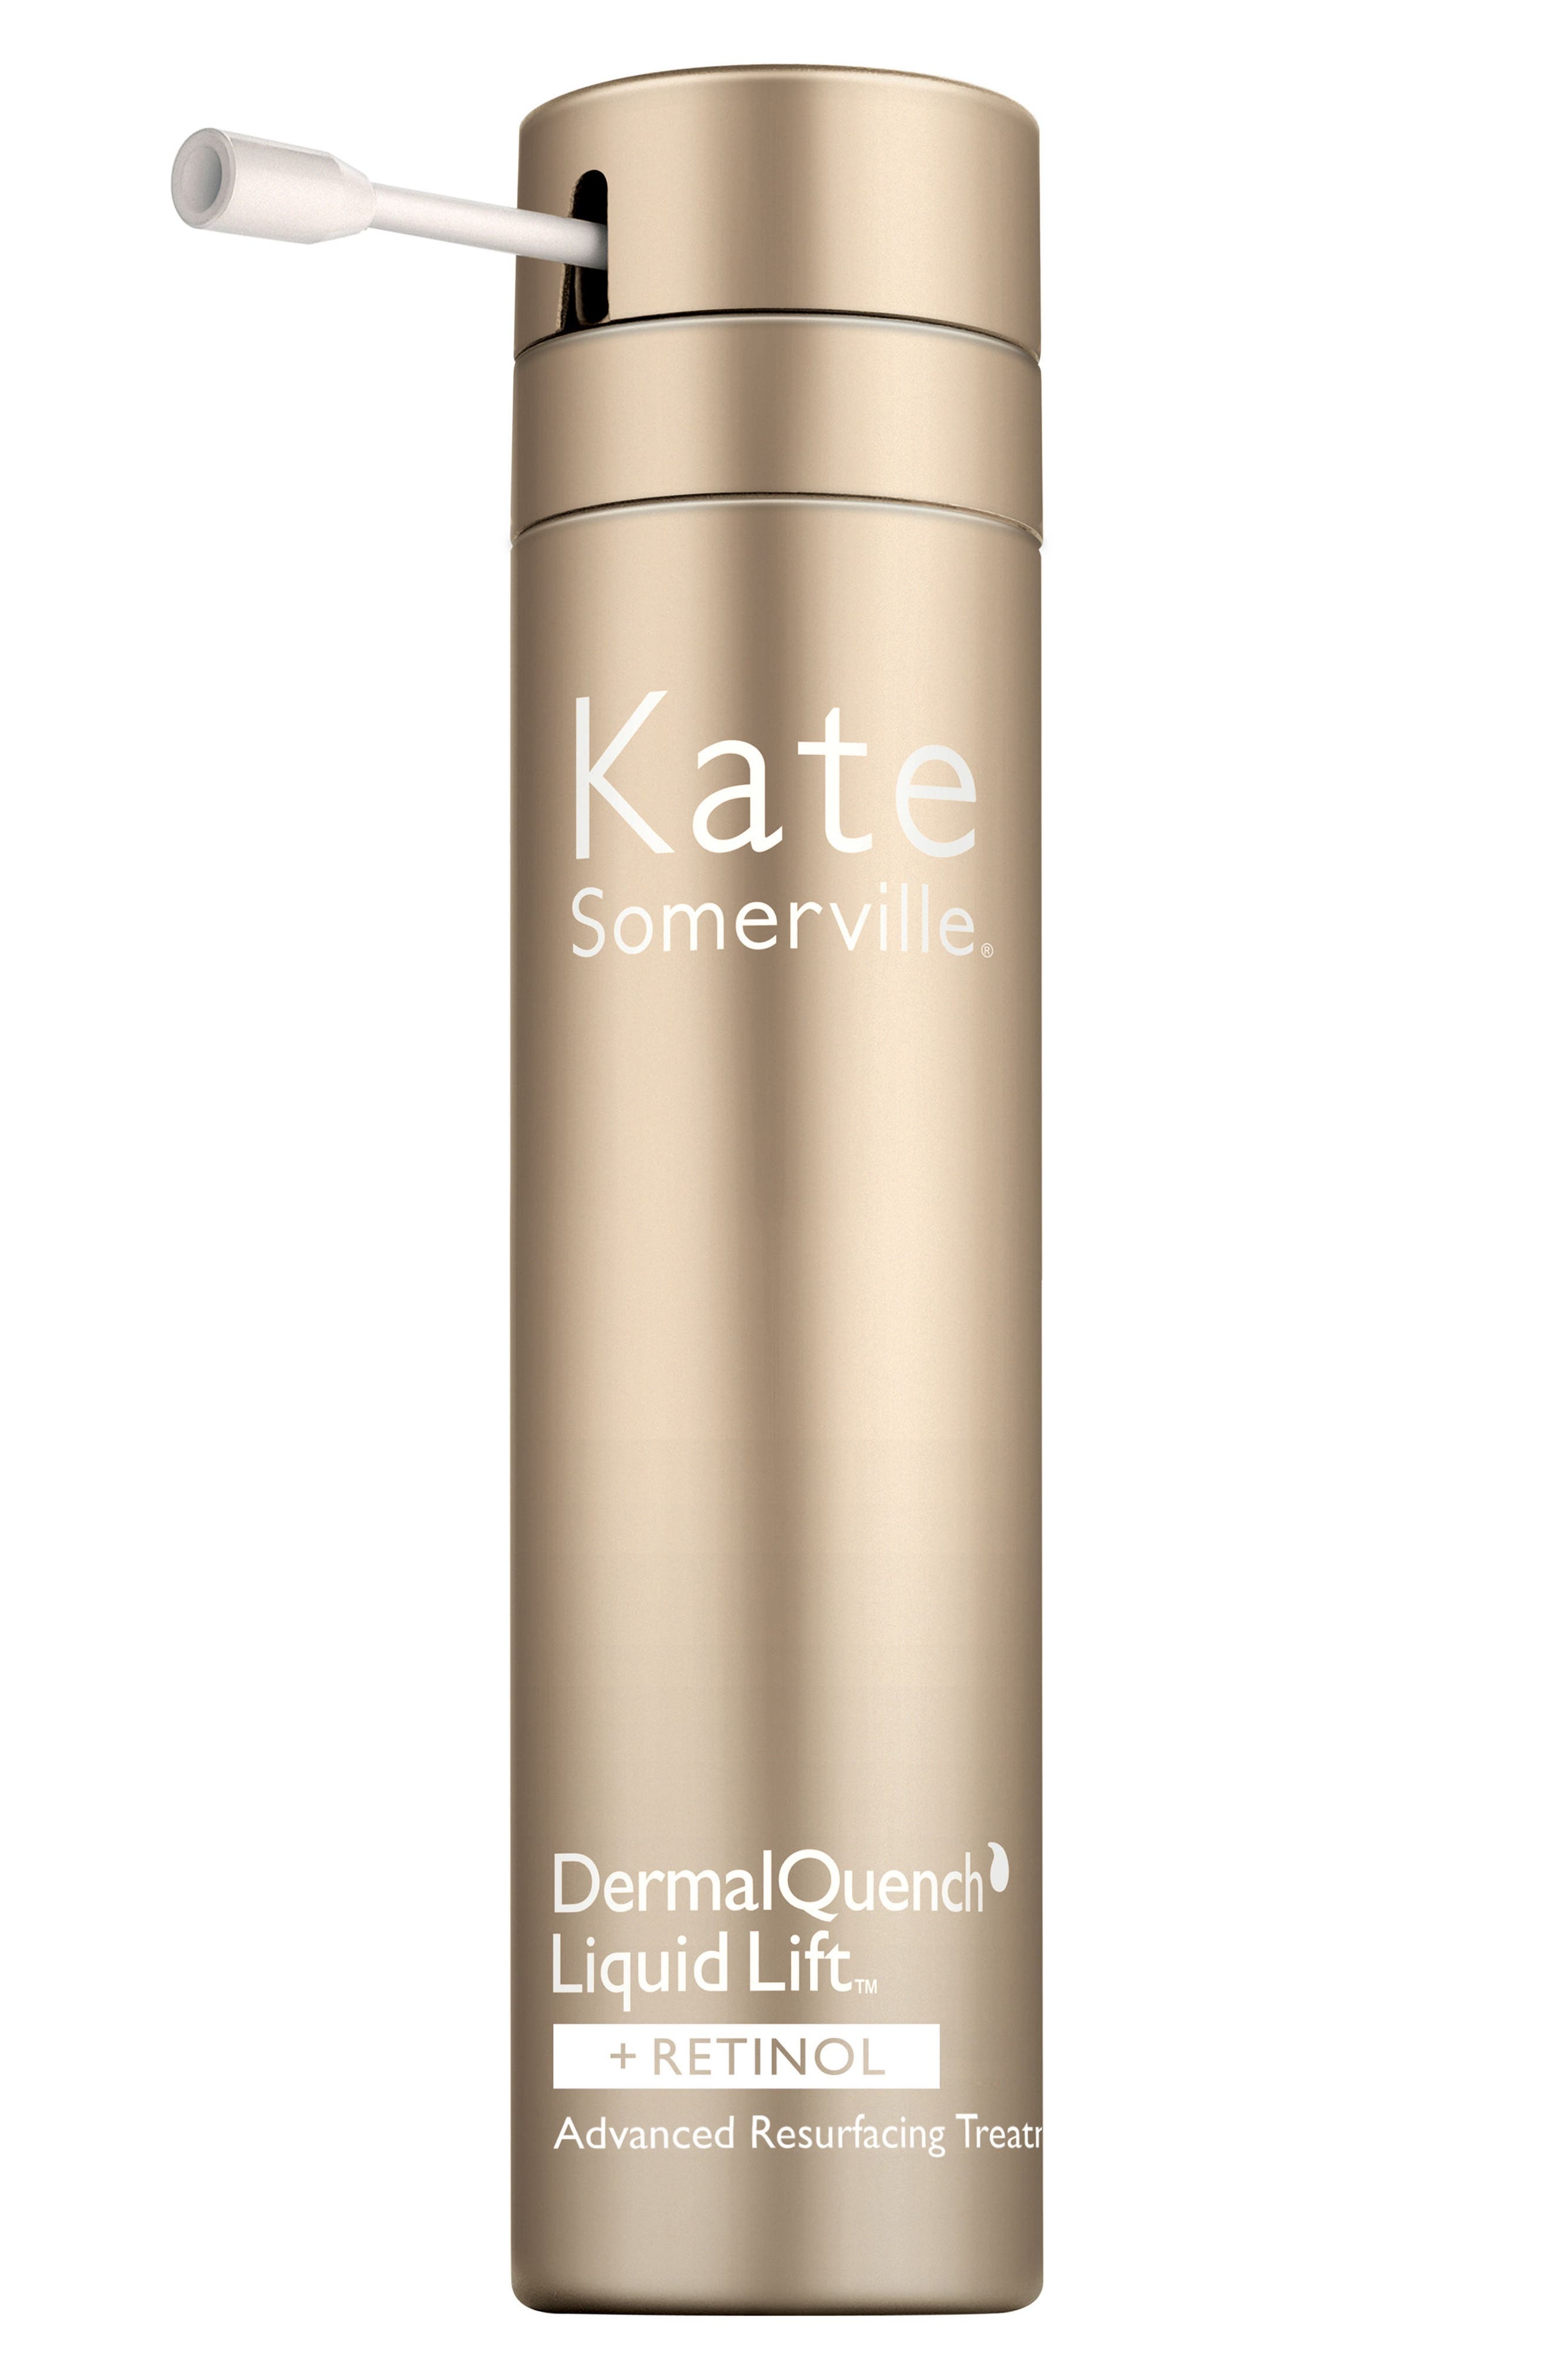 Main Image - Kate Somerville® DermalQuench Liquid Lift™ + Retinol Advanced Resurfacing Treatment